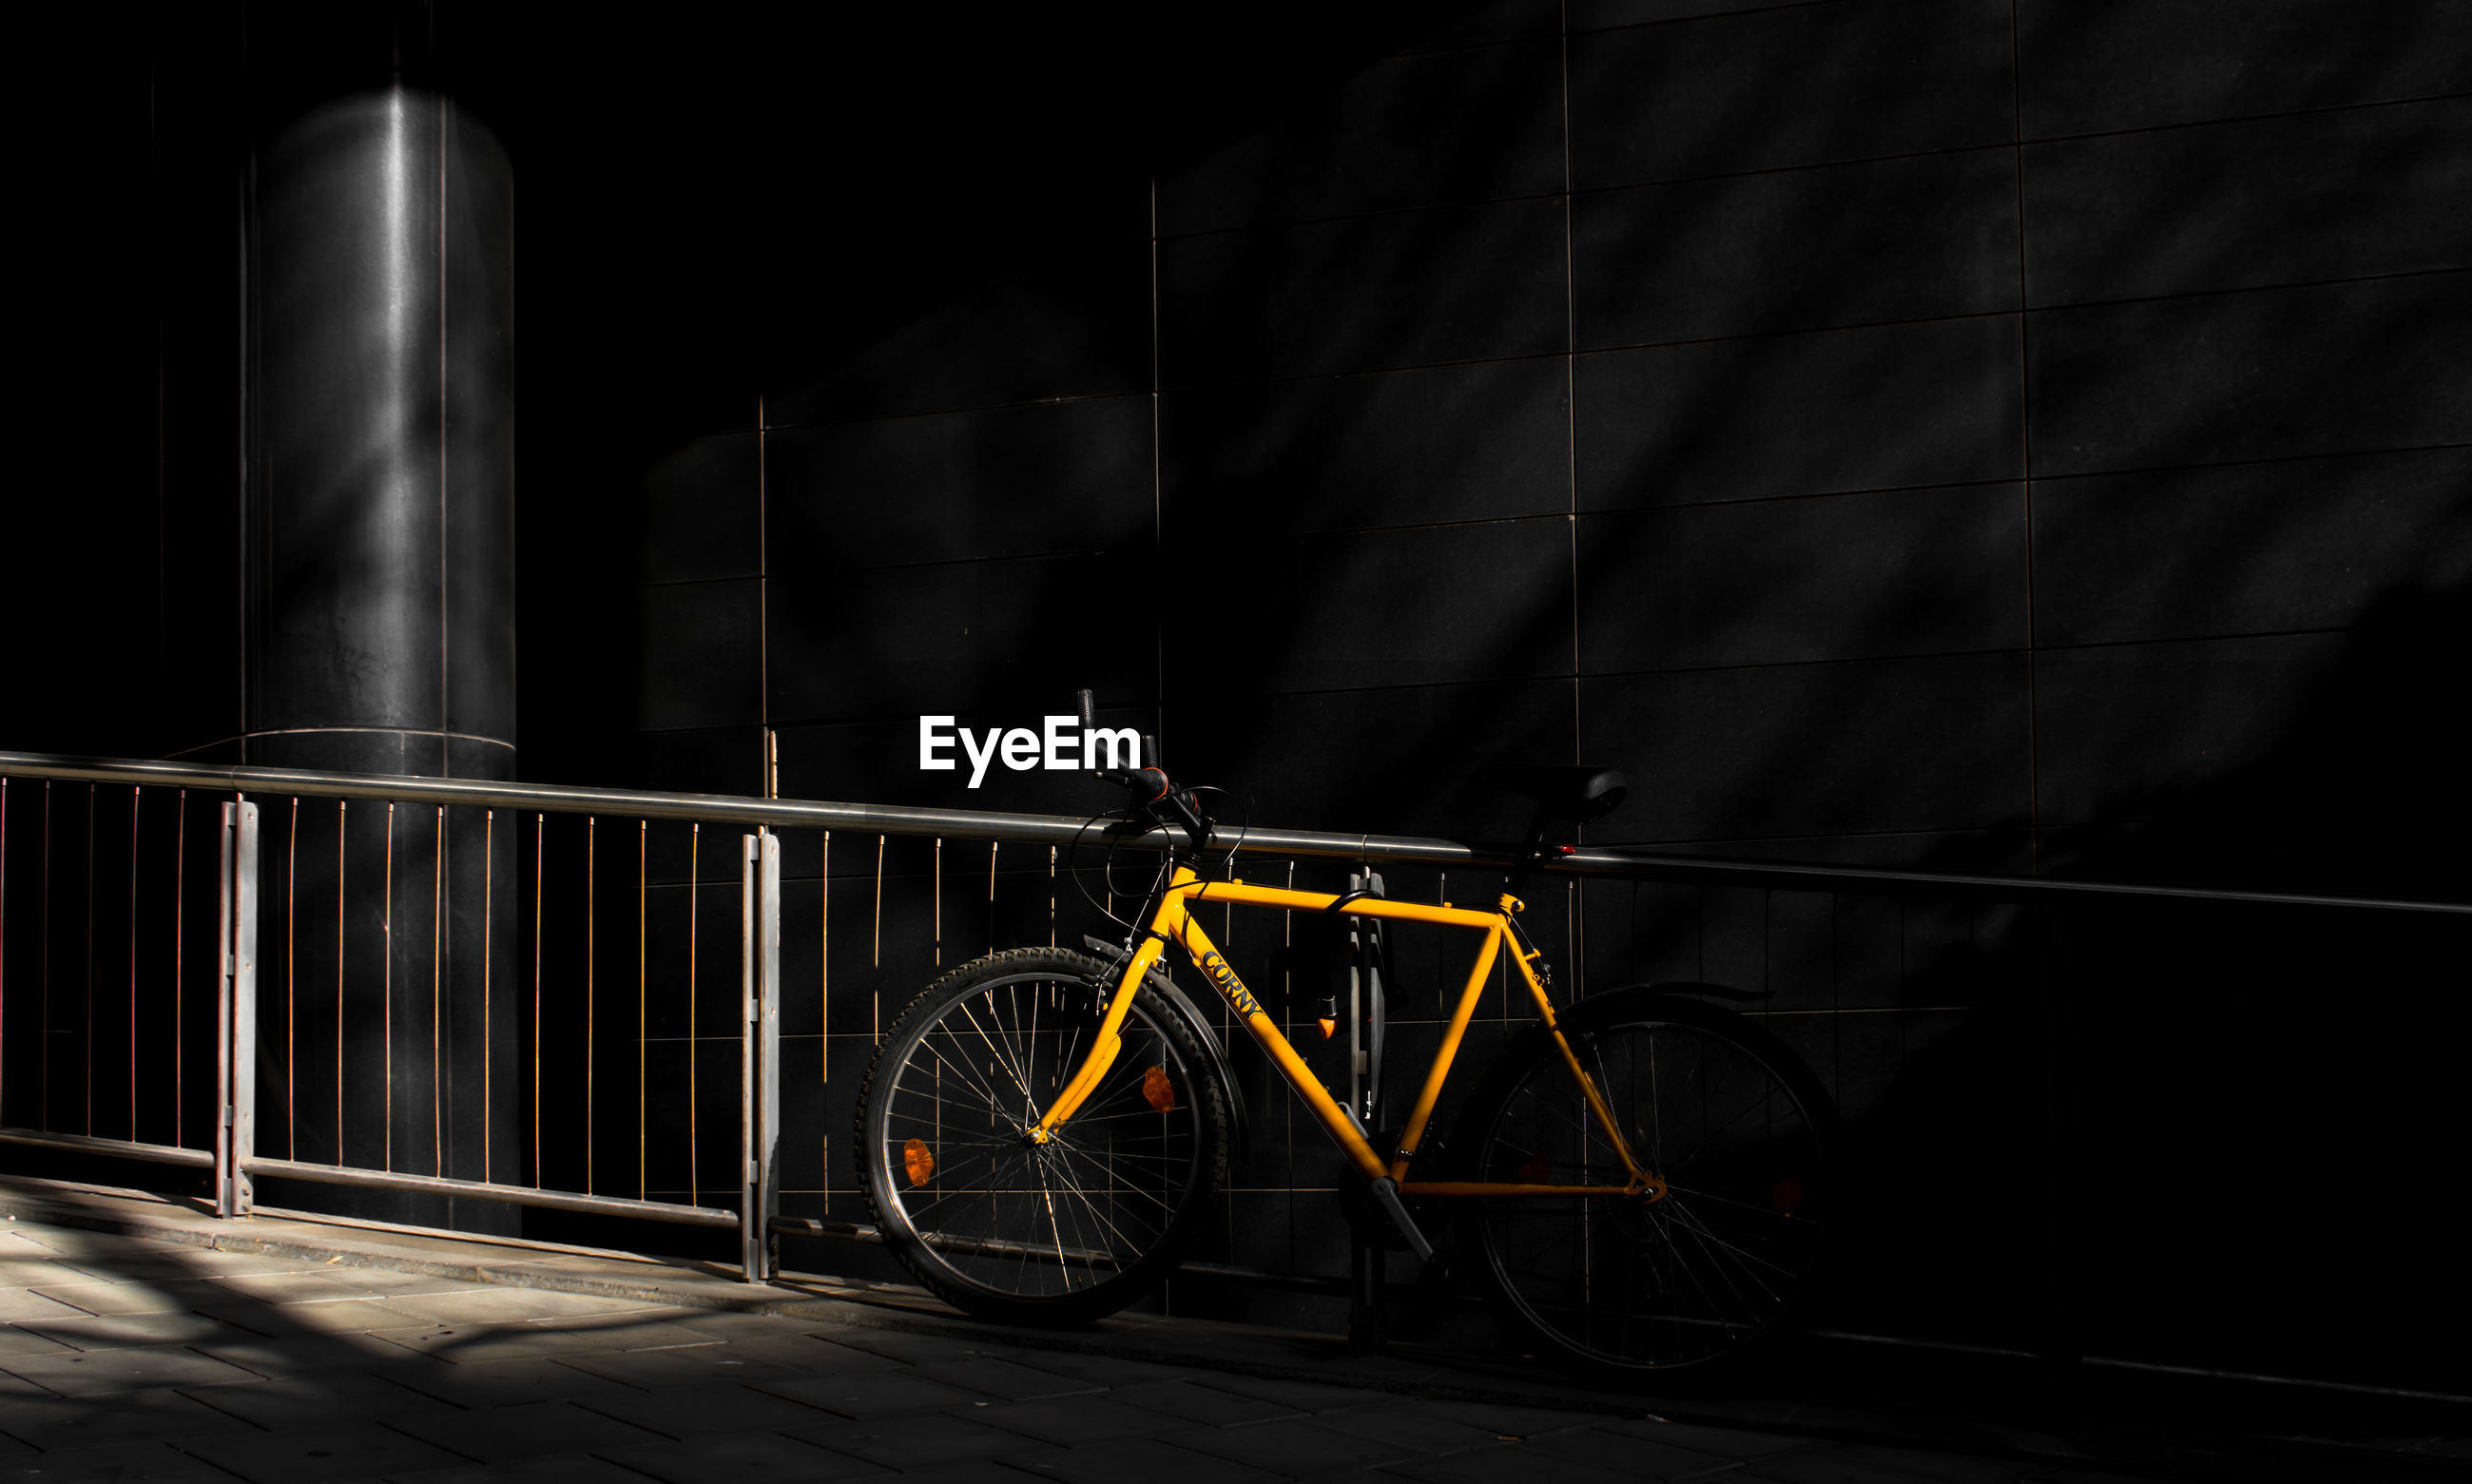 transportation, bicycle, mode of transportation, night, land vehicle, no people, stationary, metal, architecture, wheel, built structure, outdoors, dark, building exterior, illuminated, nature, parking, city, railing, travel, spoke